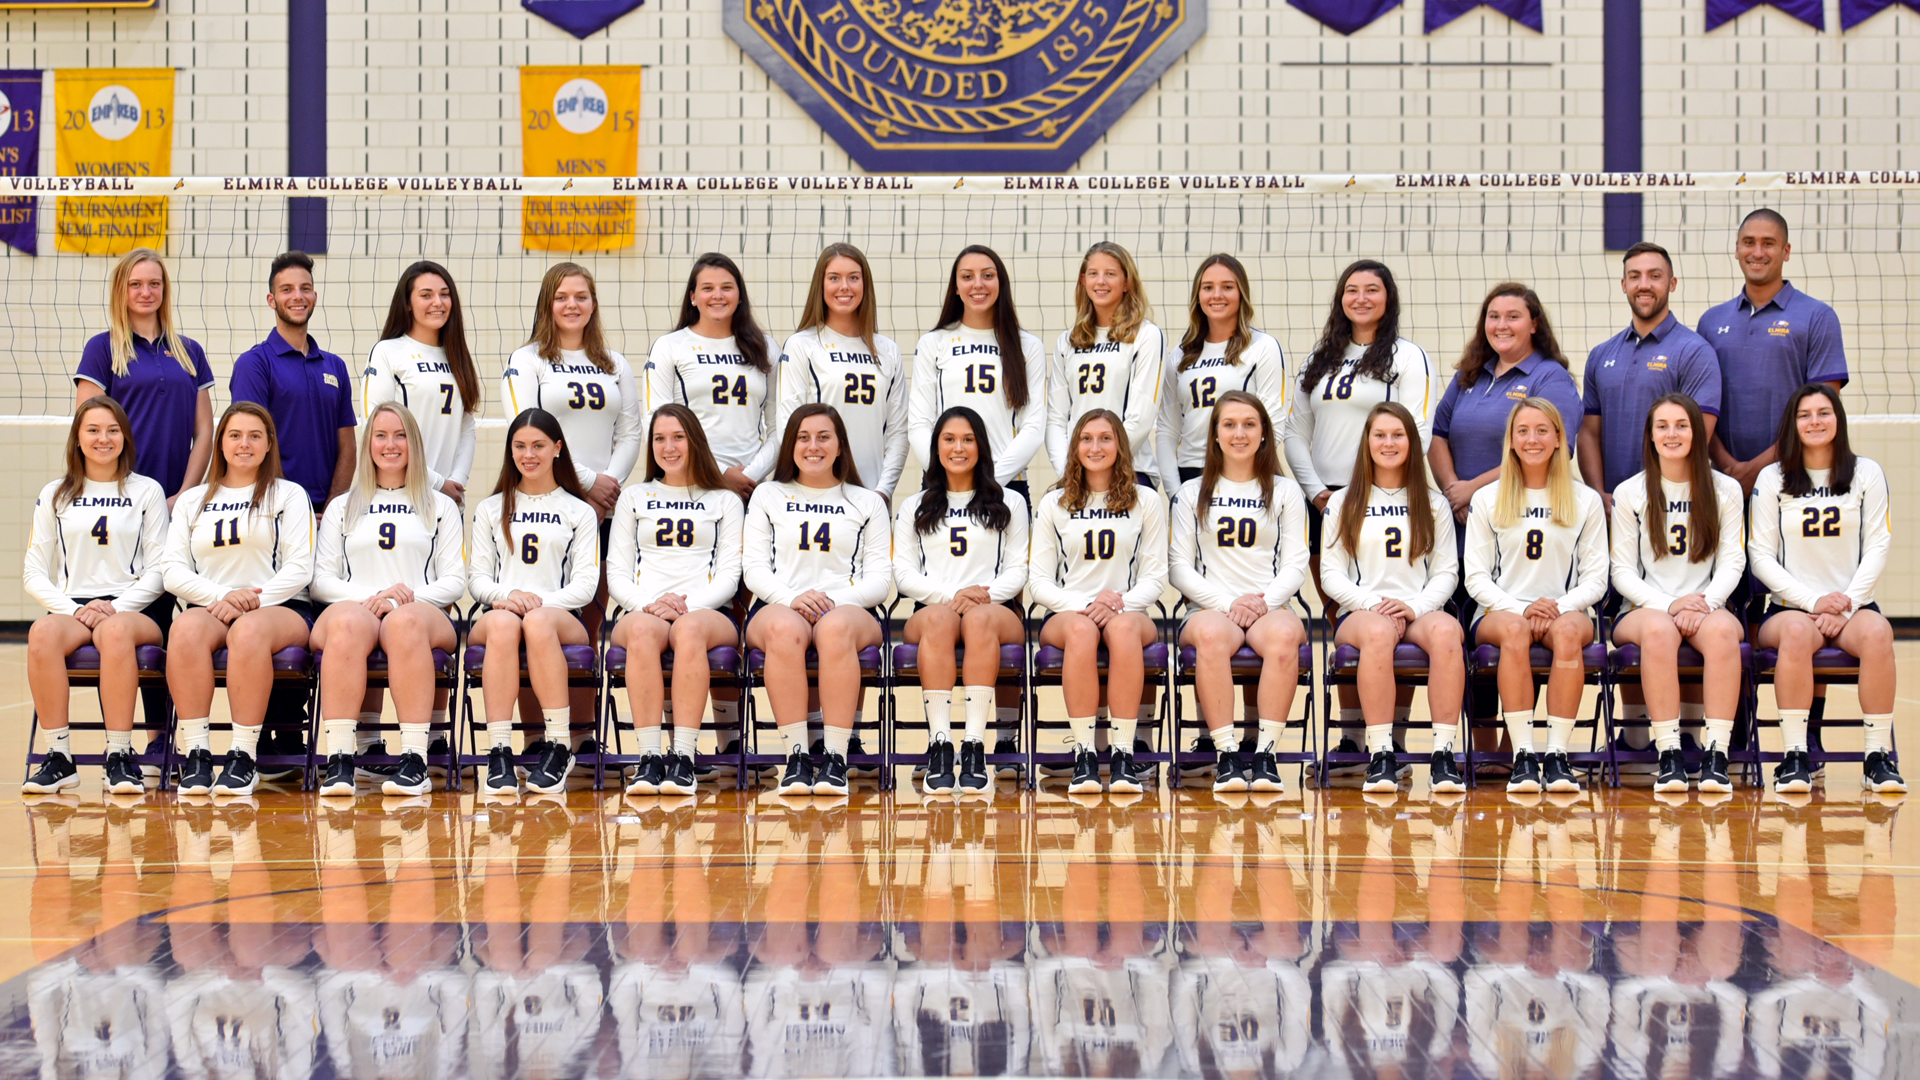 2019 Season Preview: Elmira College Women's Volleyball